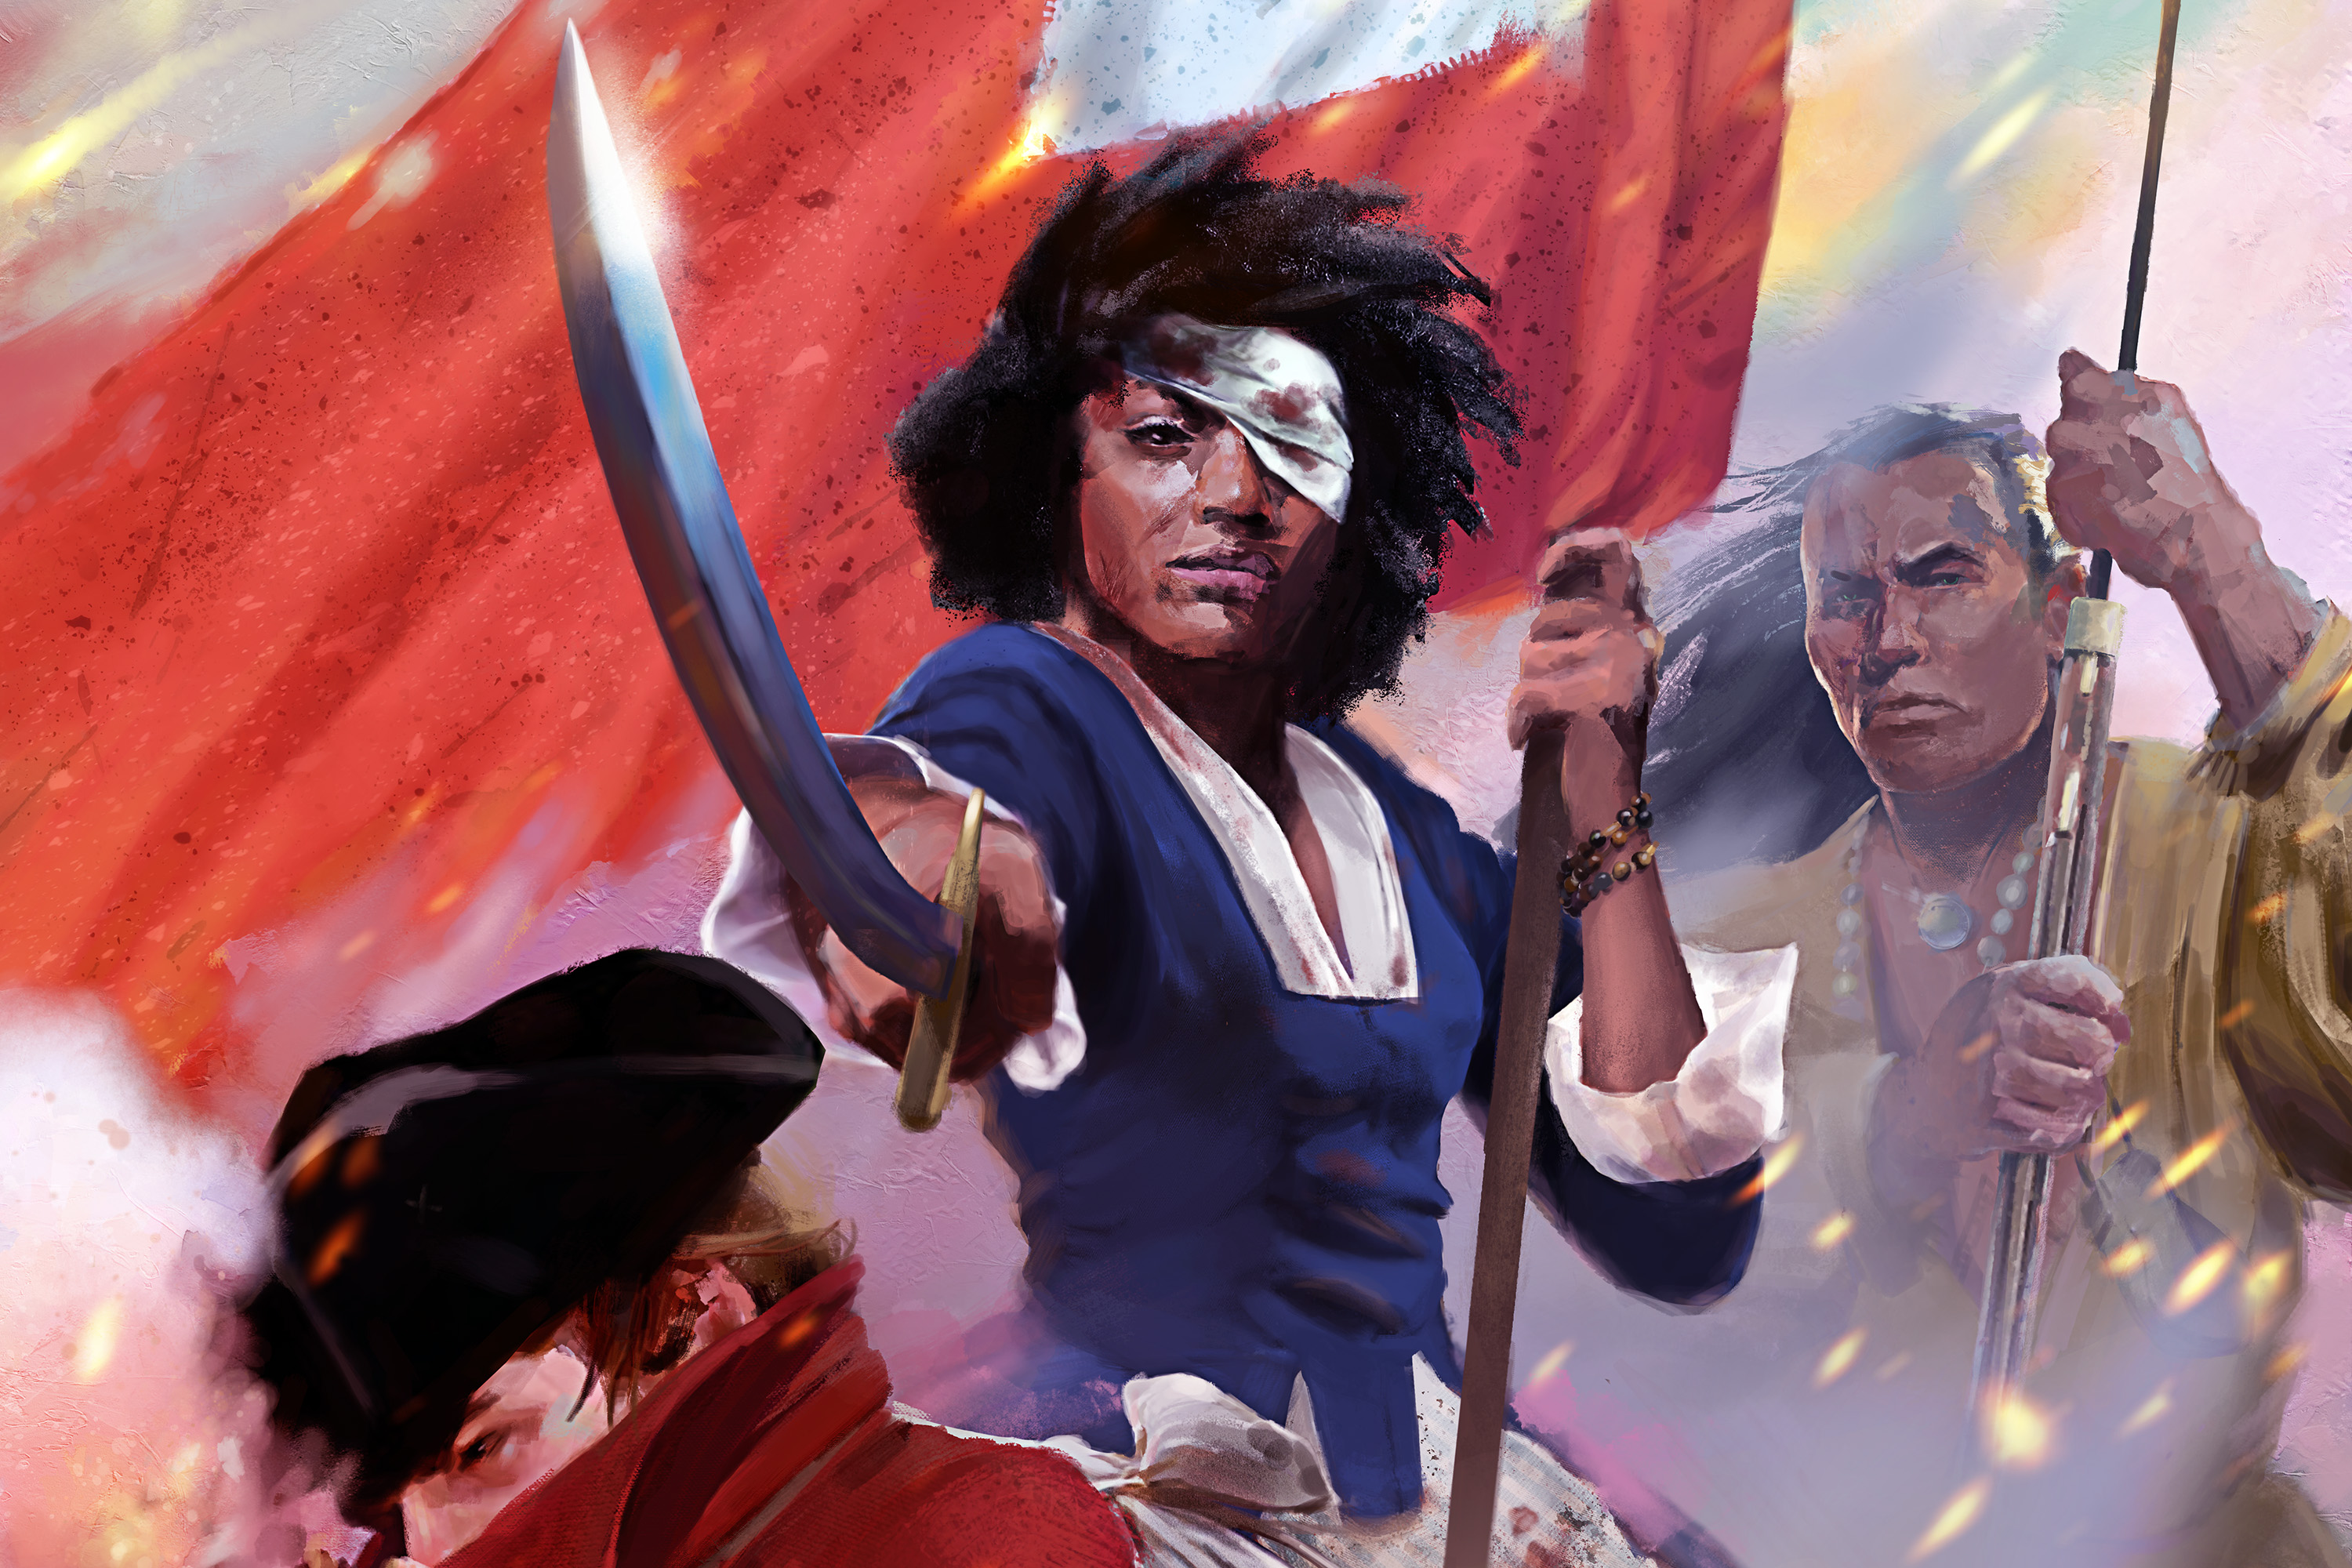 A Black woman raises a cavalry saber while holding the early flag of Virgnia. Her eye is bandaged. An Indigenous man standing behind her load a musket.